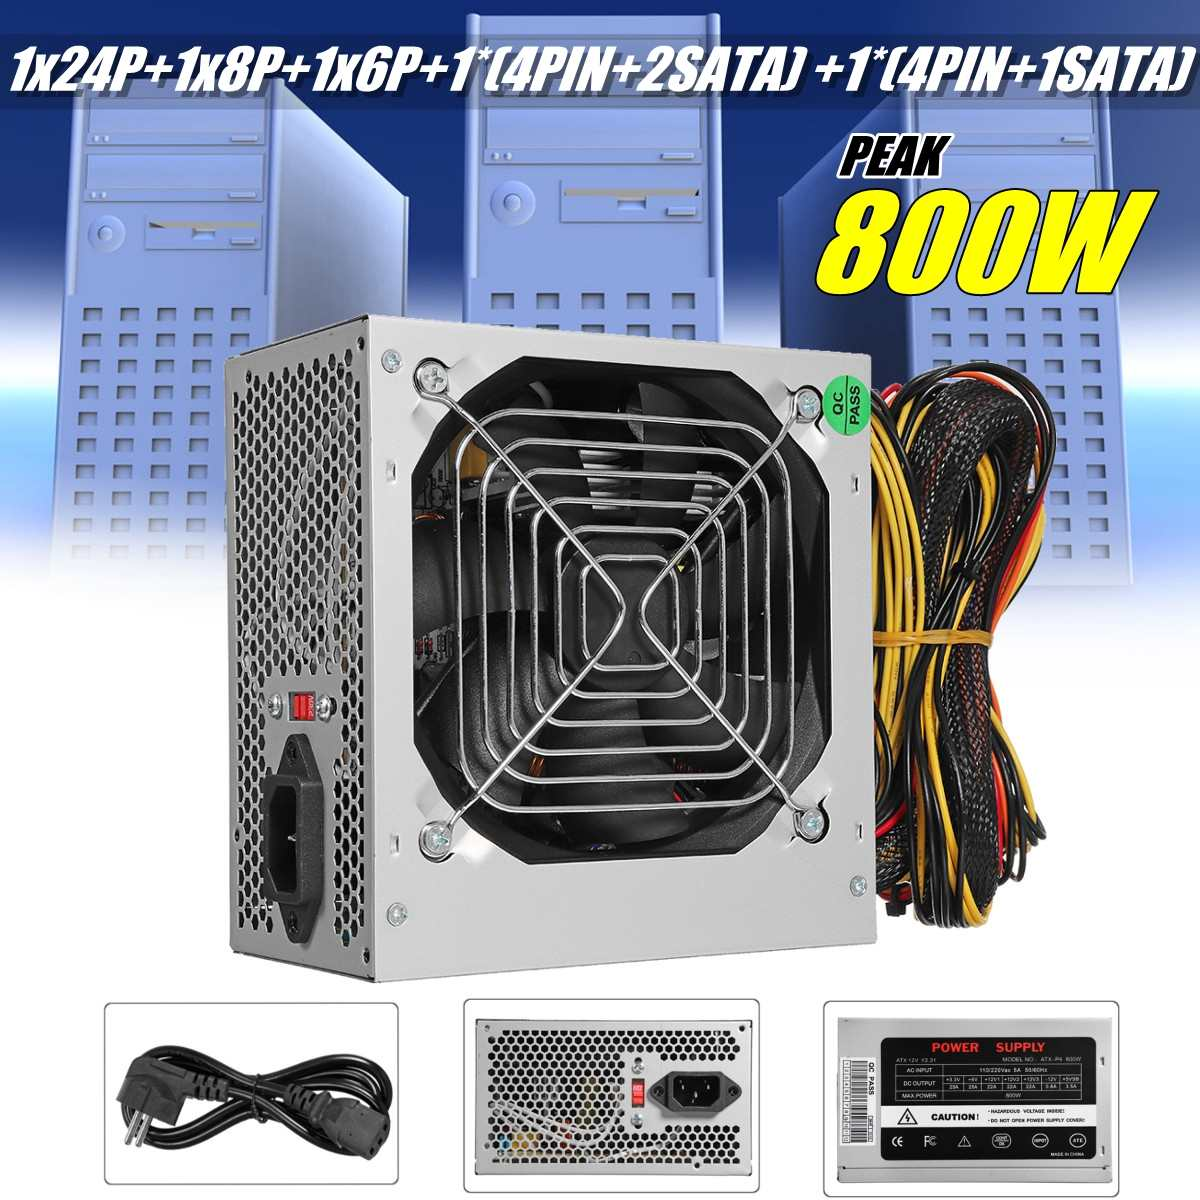 Max 800W Power Supply PSU PFC Silent Fan ATX 24 PIN 12V PC Computer SATA Gaming